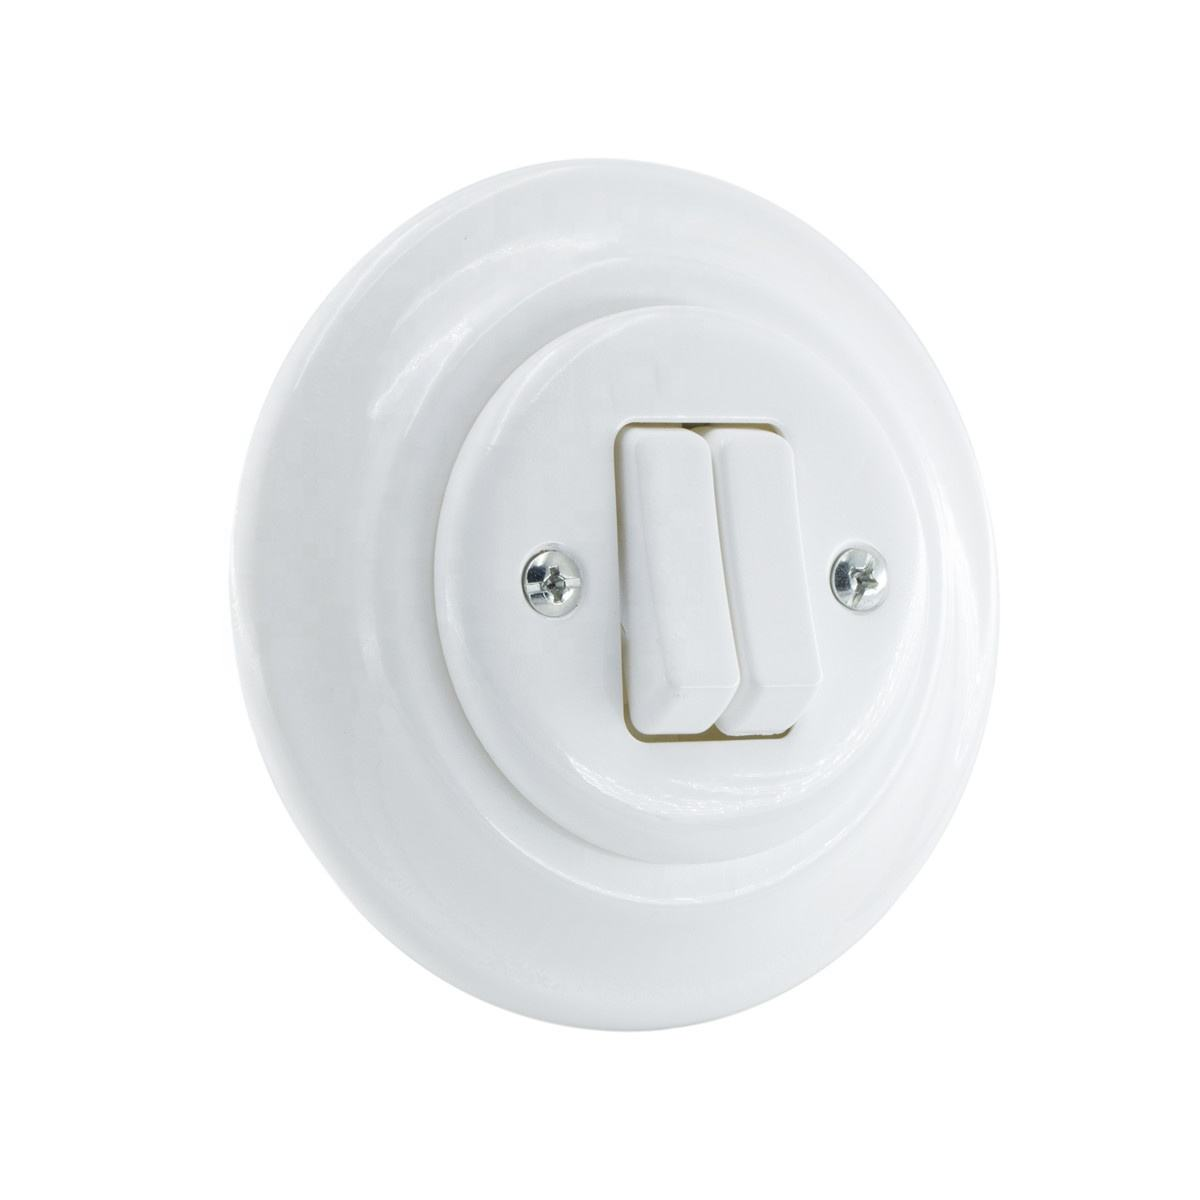 2 keys porcelain button switch,flush mounted porcelain rocker switch,retro light switch and wall socket